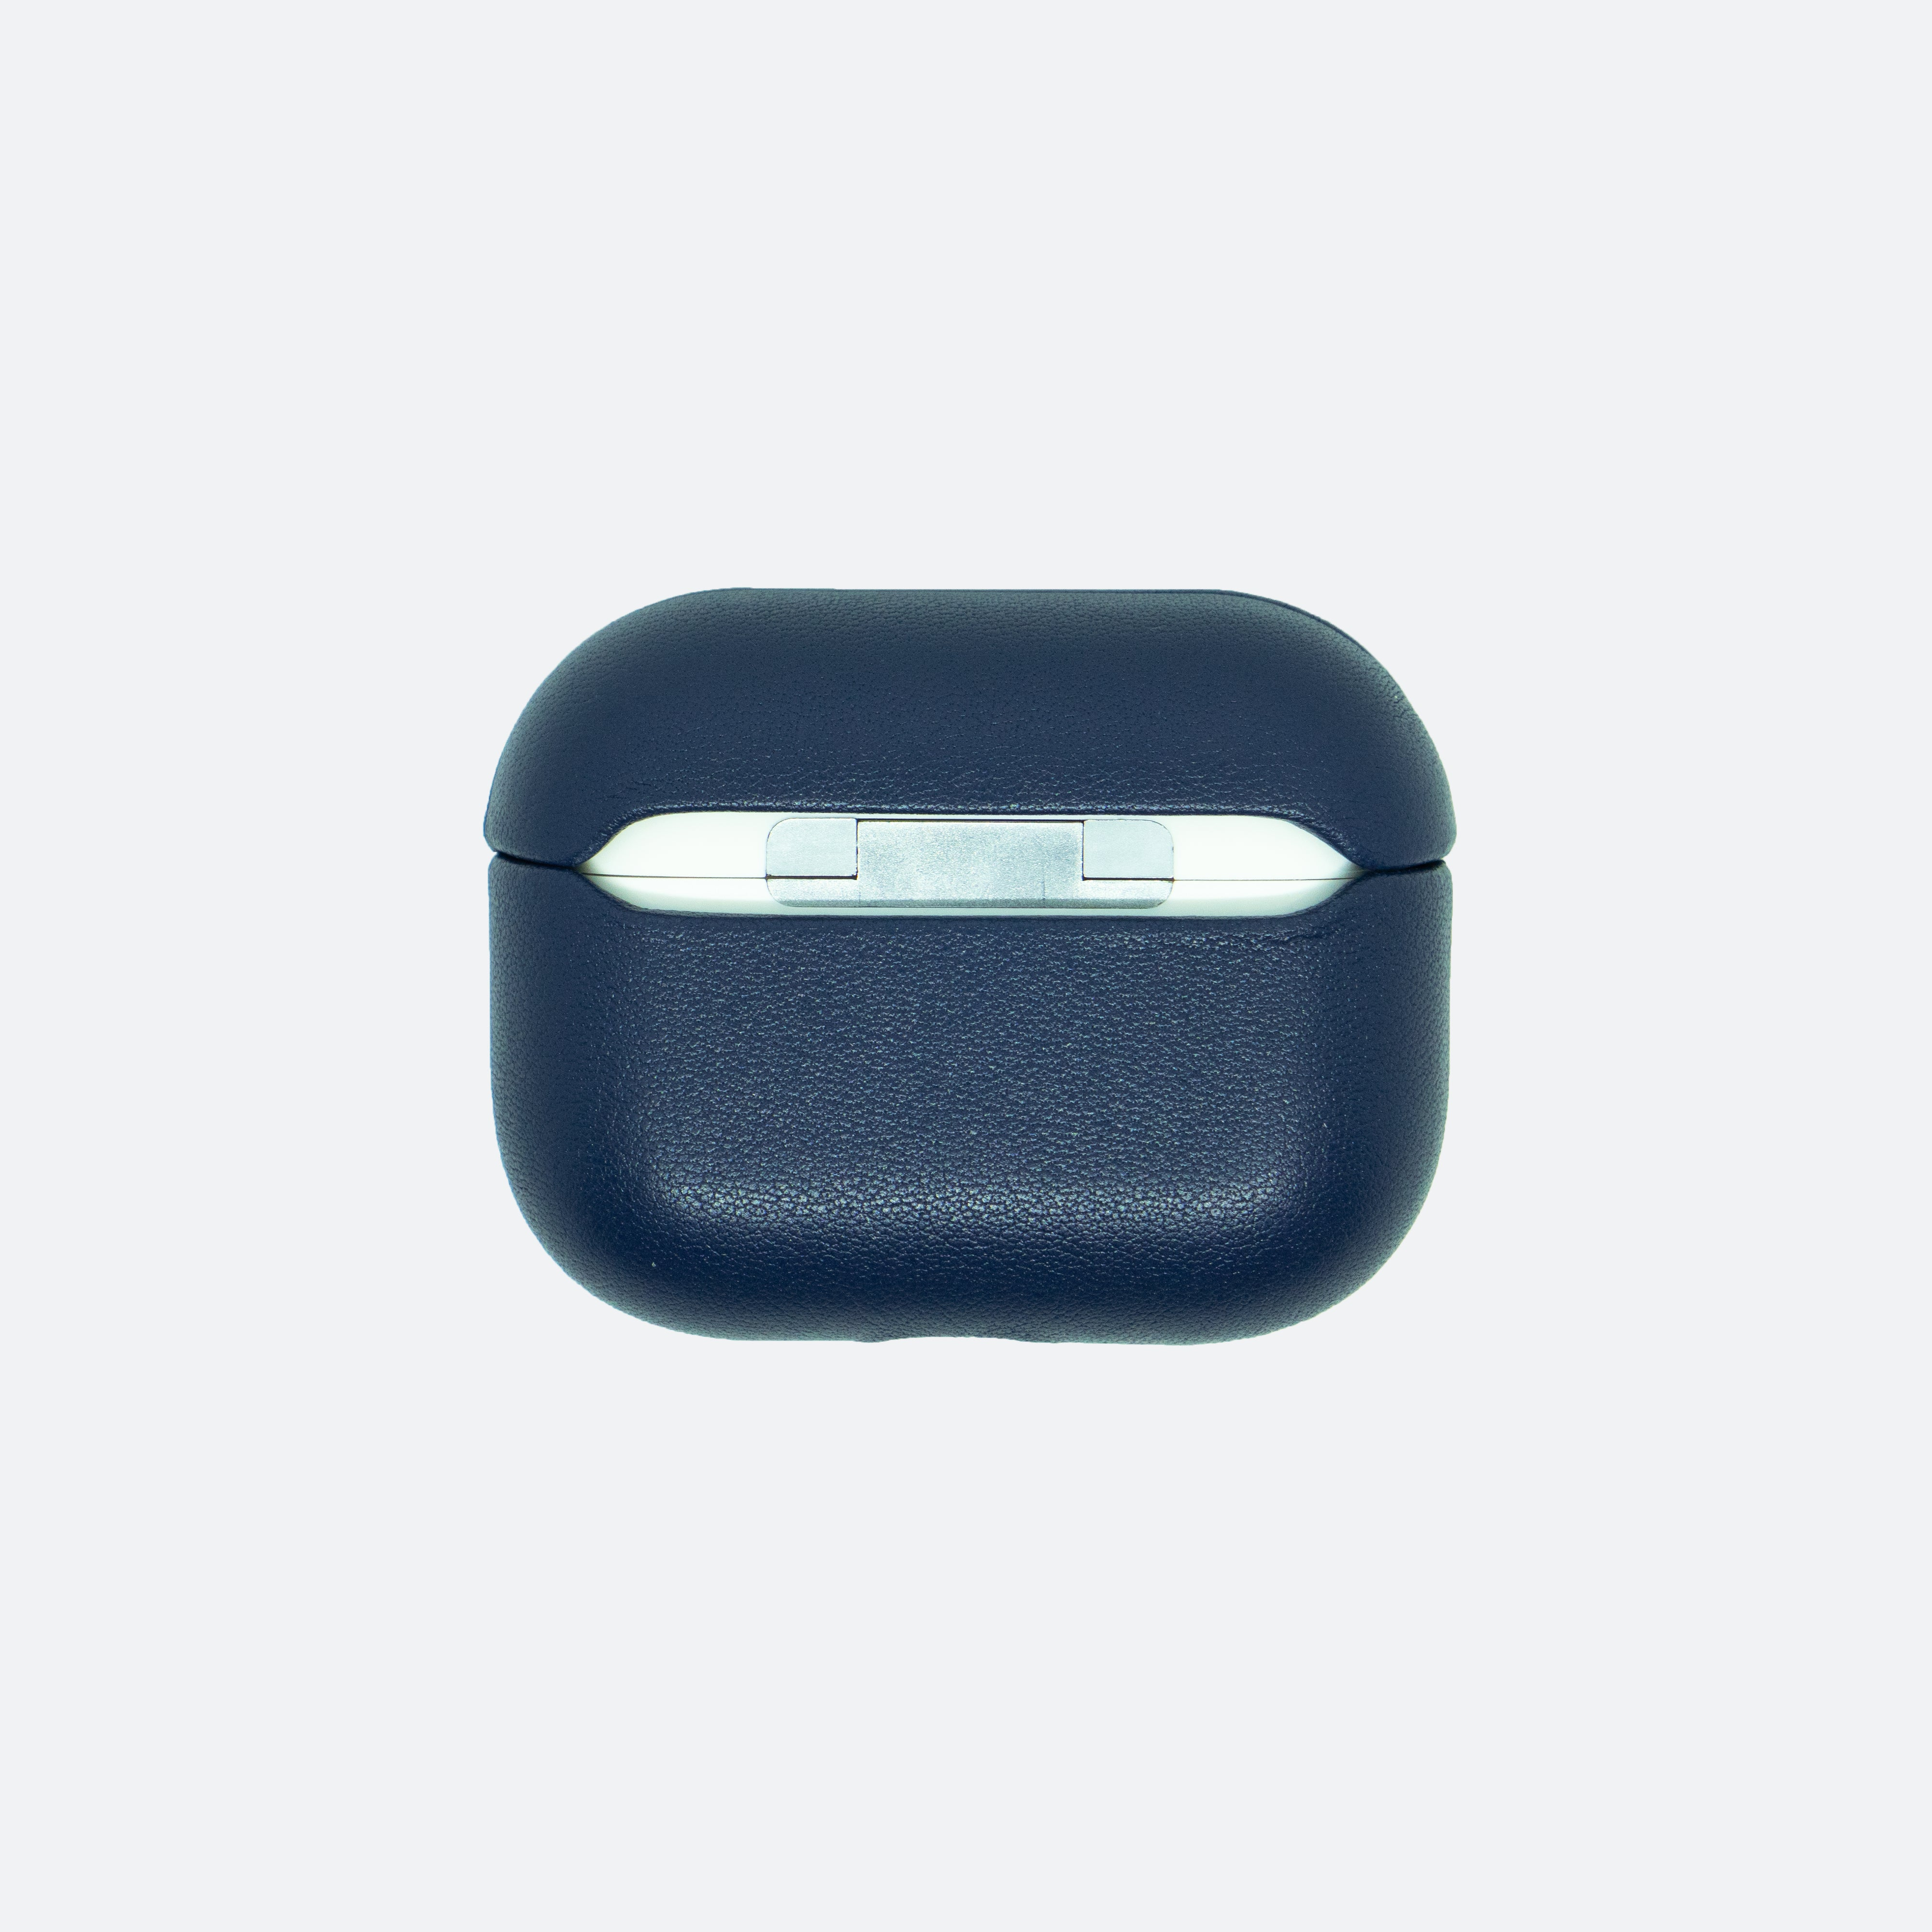 Personalised Midnight Navy Airpods Pro Case in Singapore with name engraving and customisation